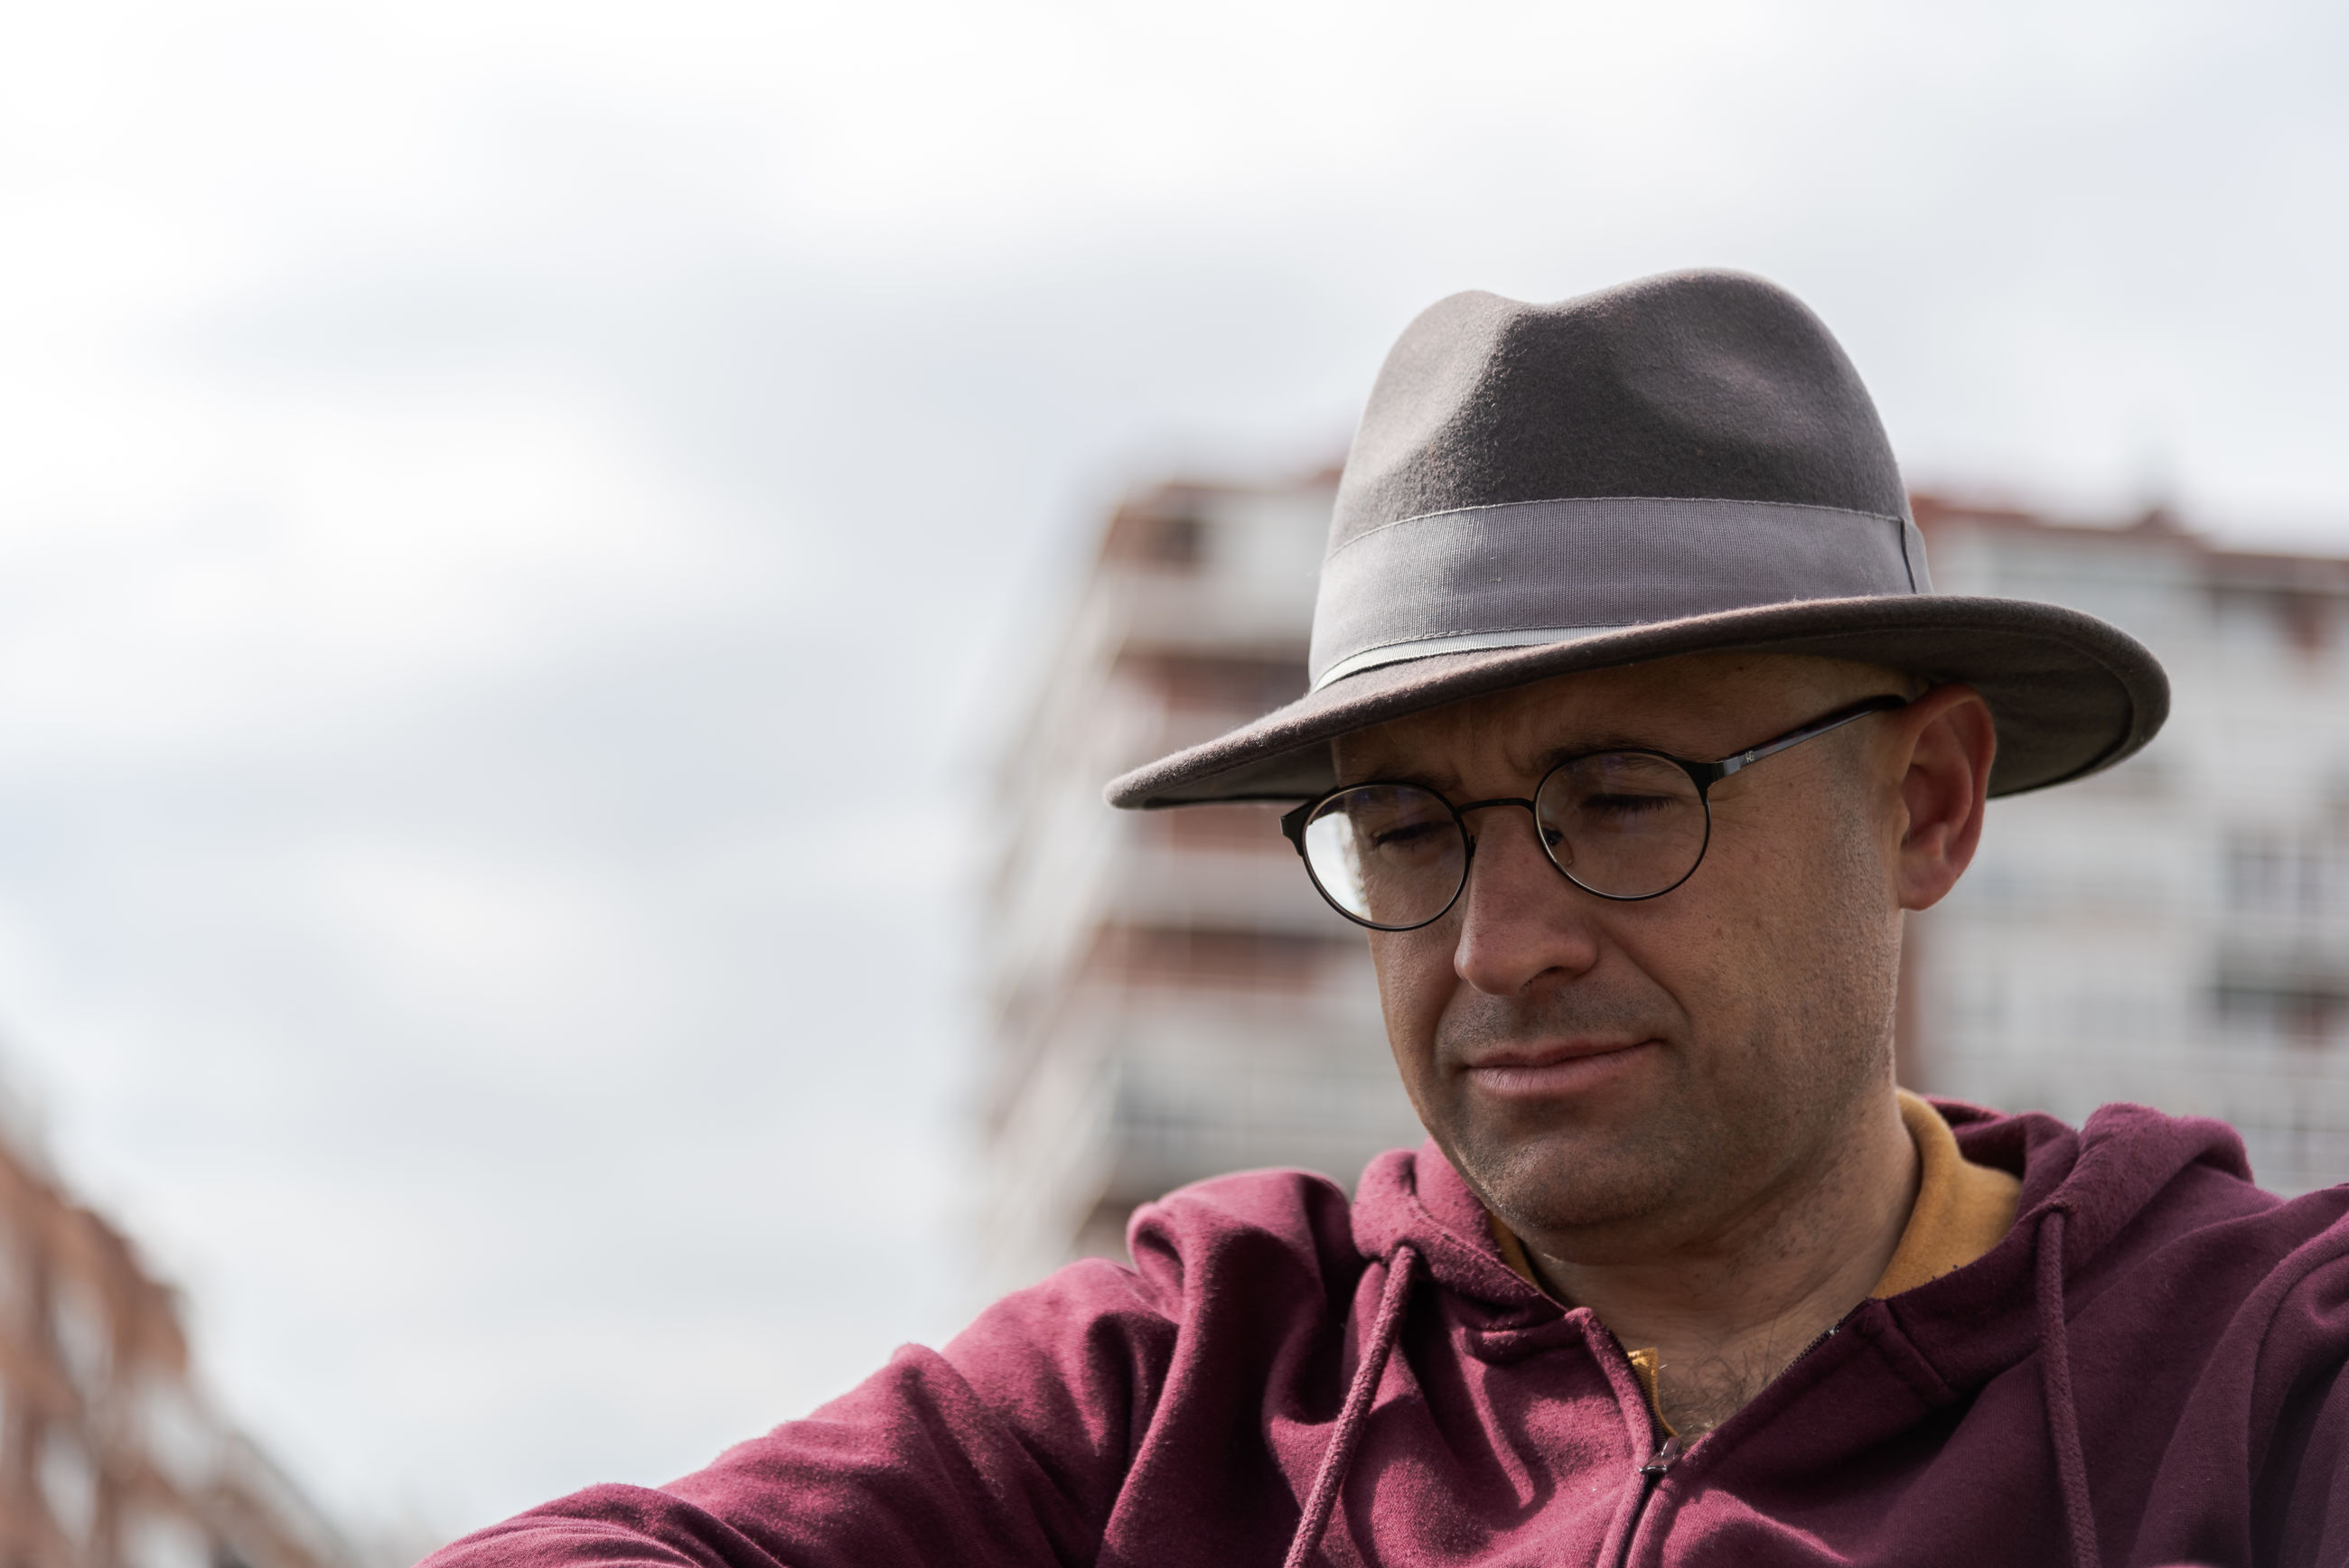 Close-up of mature man wearing eyeglasses and hat against sky